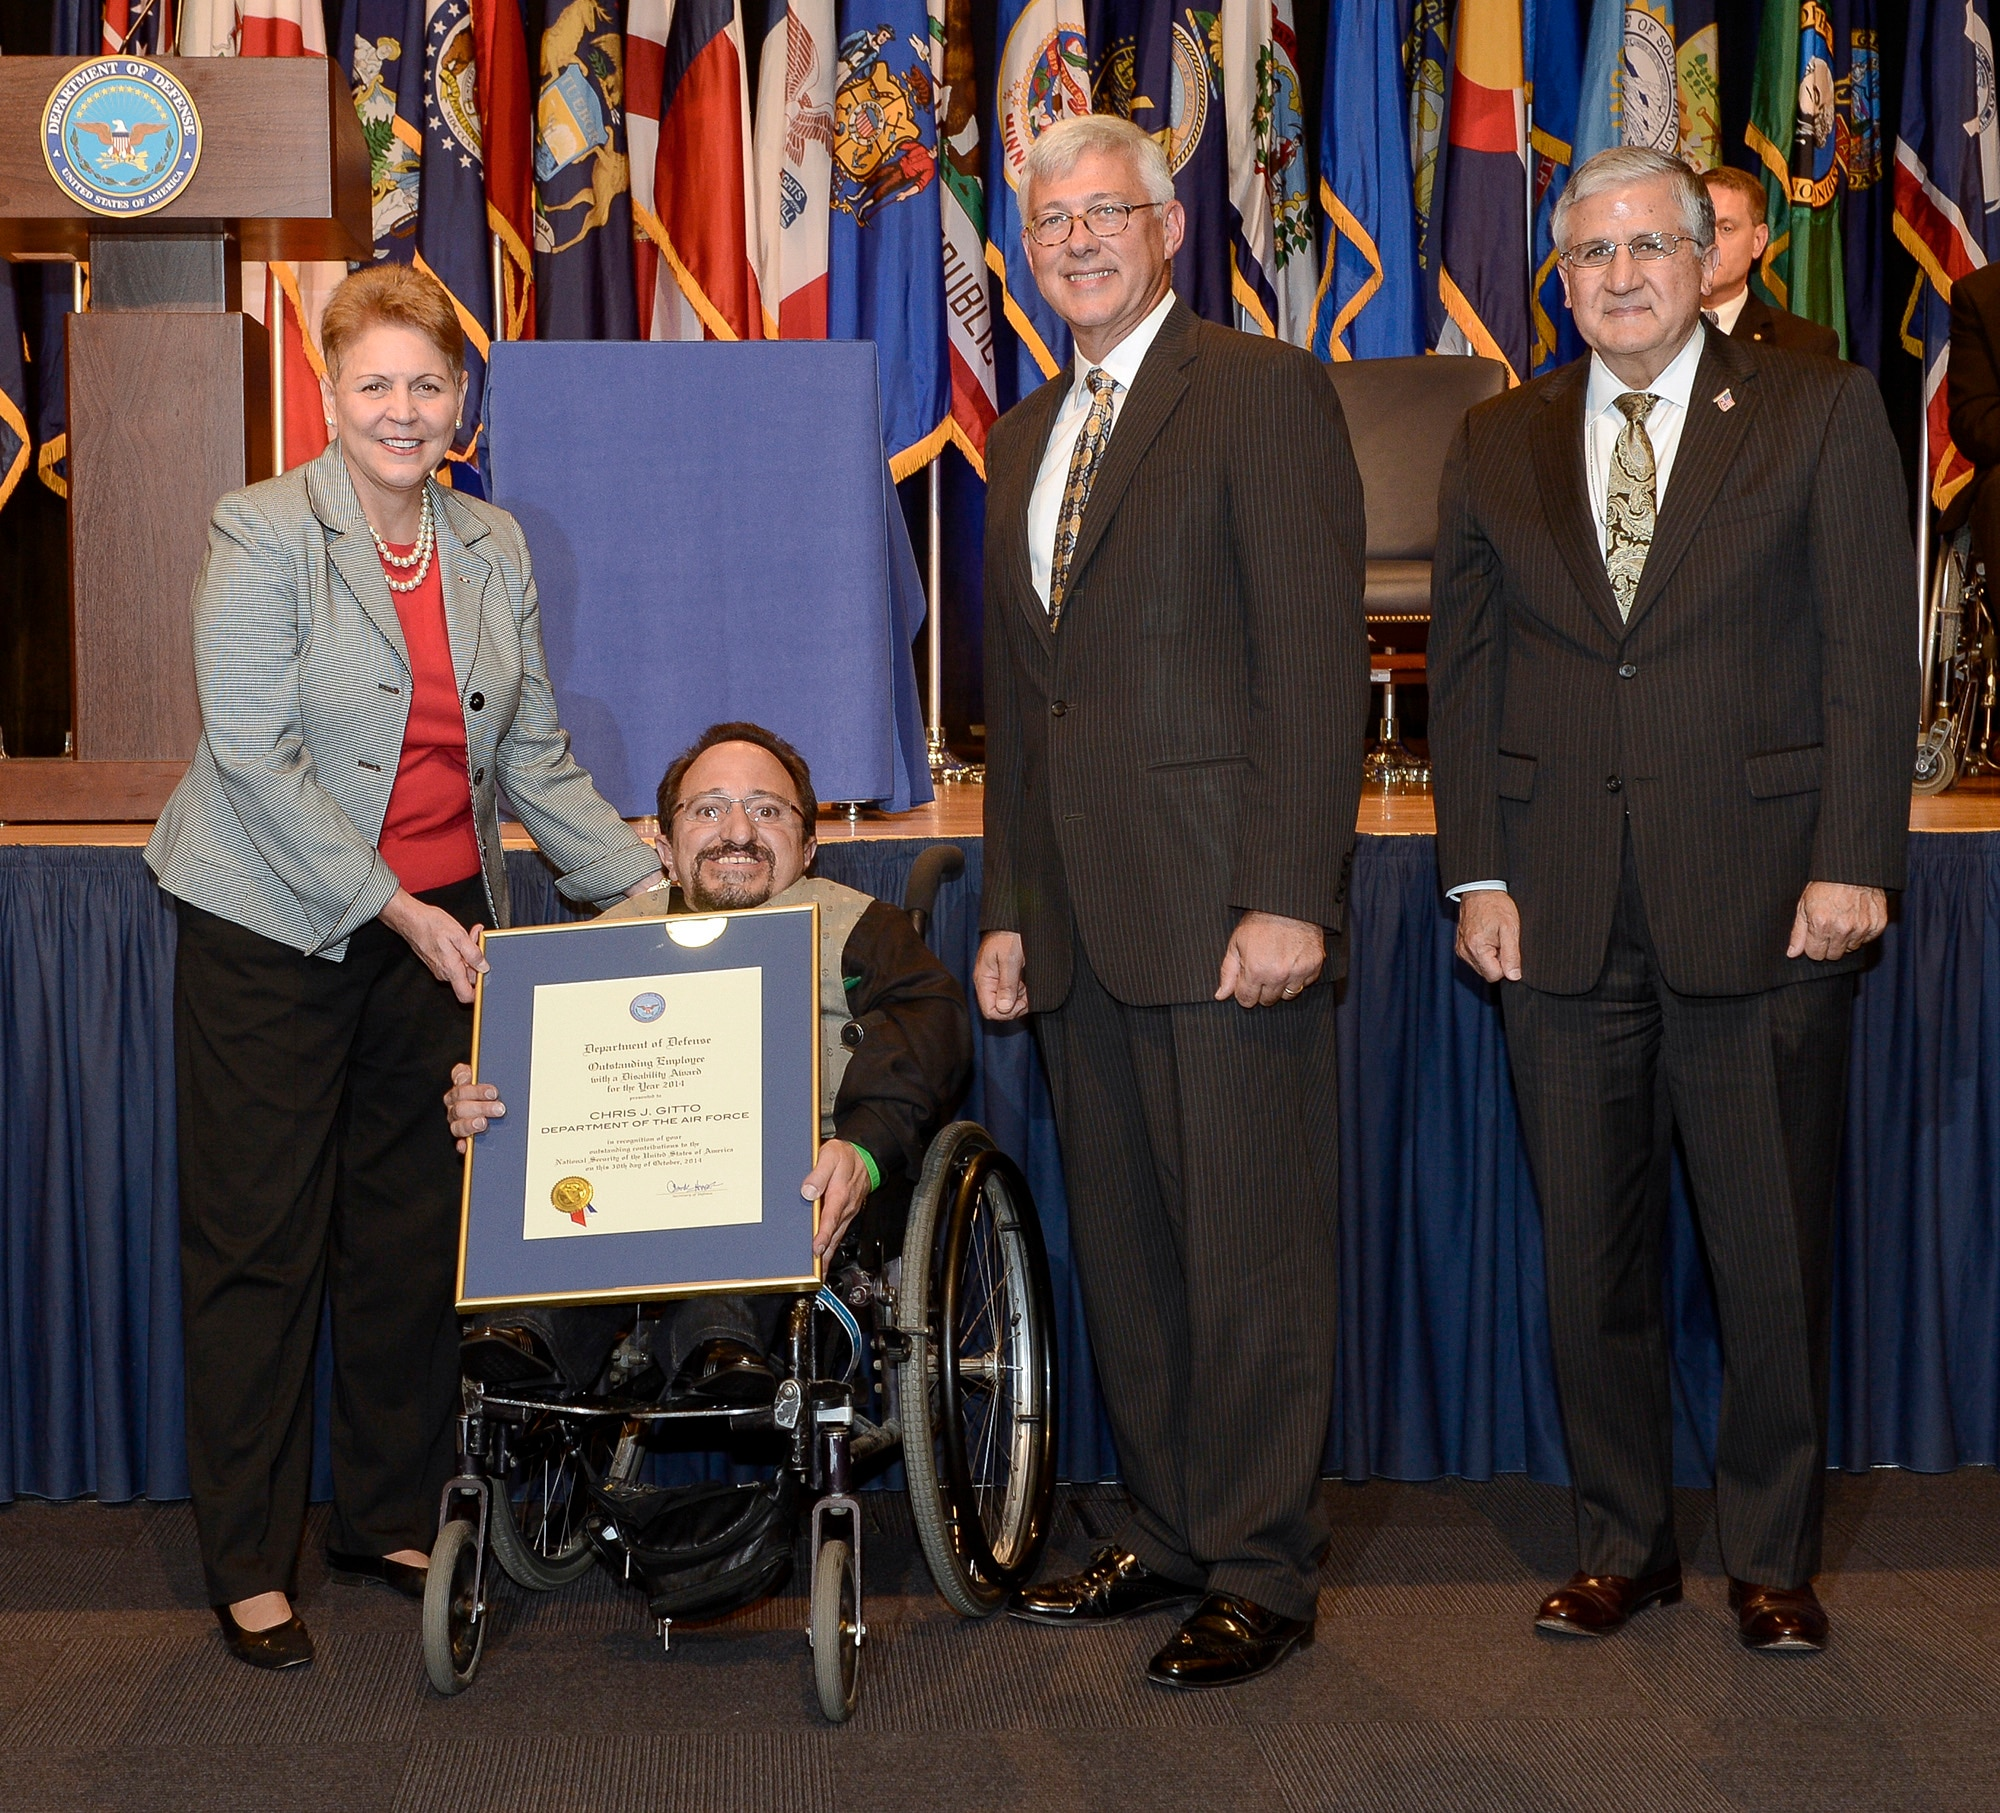 Under Secretary for Defense Jessica Garfola, Principal Deputy Assistant Secretary for Manpower and Reserve Affairs Daniel Sitterly and Assistant Deputy Chief of Staff for Manpower, Personnel and Services Robert Corsi present Chris Gitto with the 2014 DOD Disability Award during a ceremony Oct. 30, 2014, at the Pentagon. The DOD Disability Awards ceremony honors service components for outstanding achievements in the hiring, retention and advancement of individuals with disabilities.  Gitto is a technical information specialist from Kirkland Air Force Base, N.M. (U.S. Air Force photo/Andy Morataya)